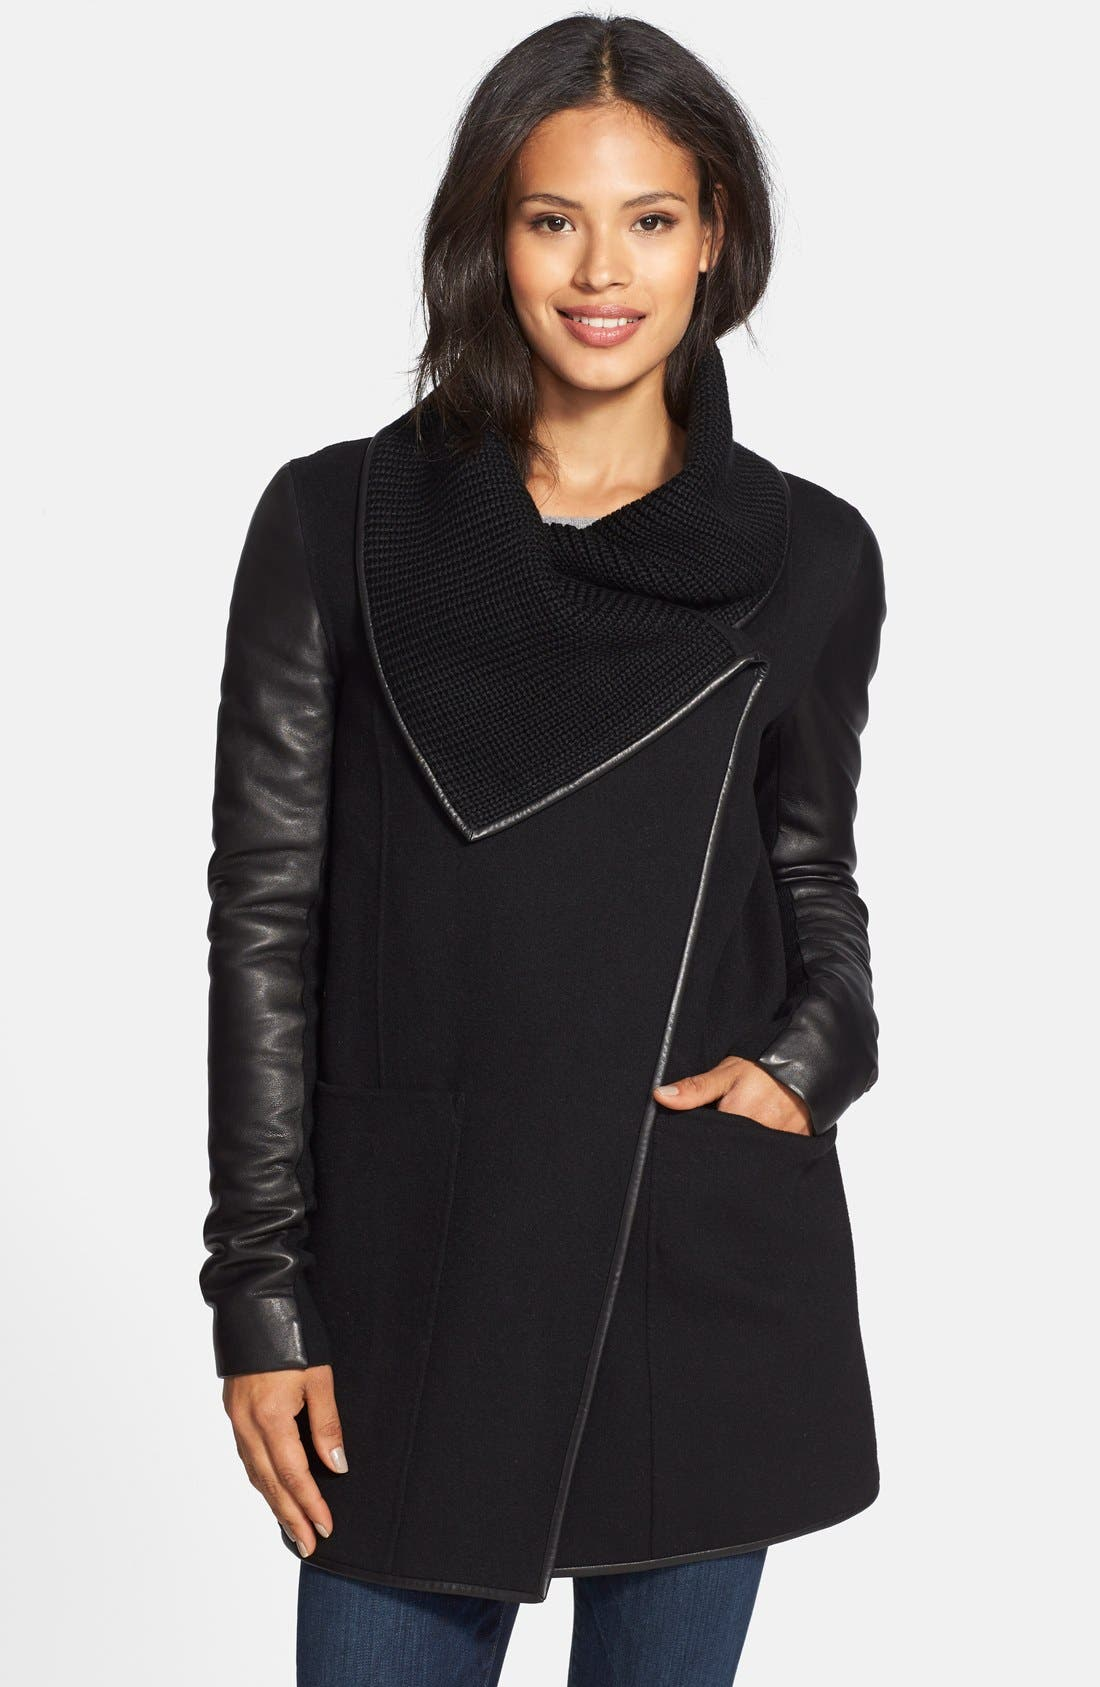 Main Image - Mackage Double Face Wool Blend Coat with Knit Collar & Leather Trim